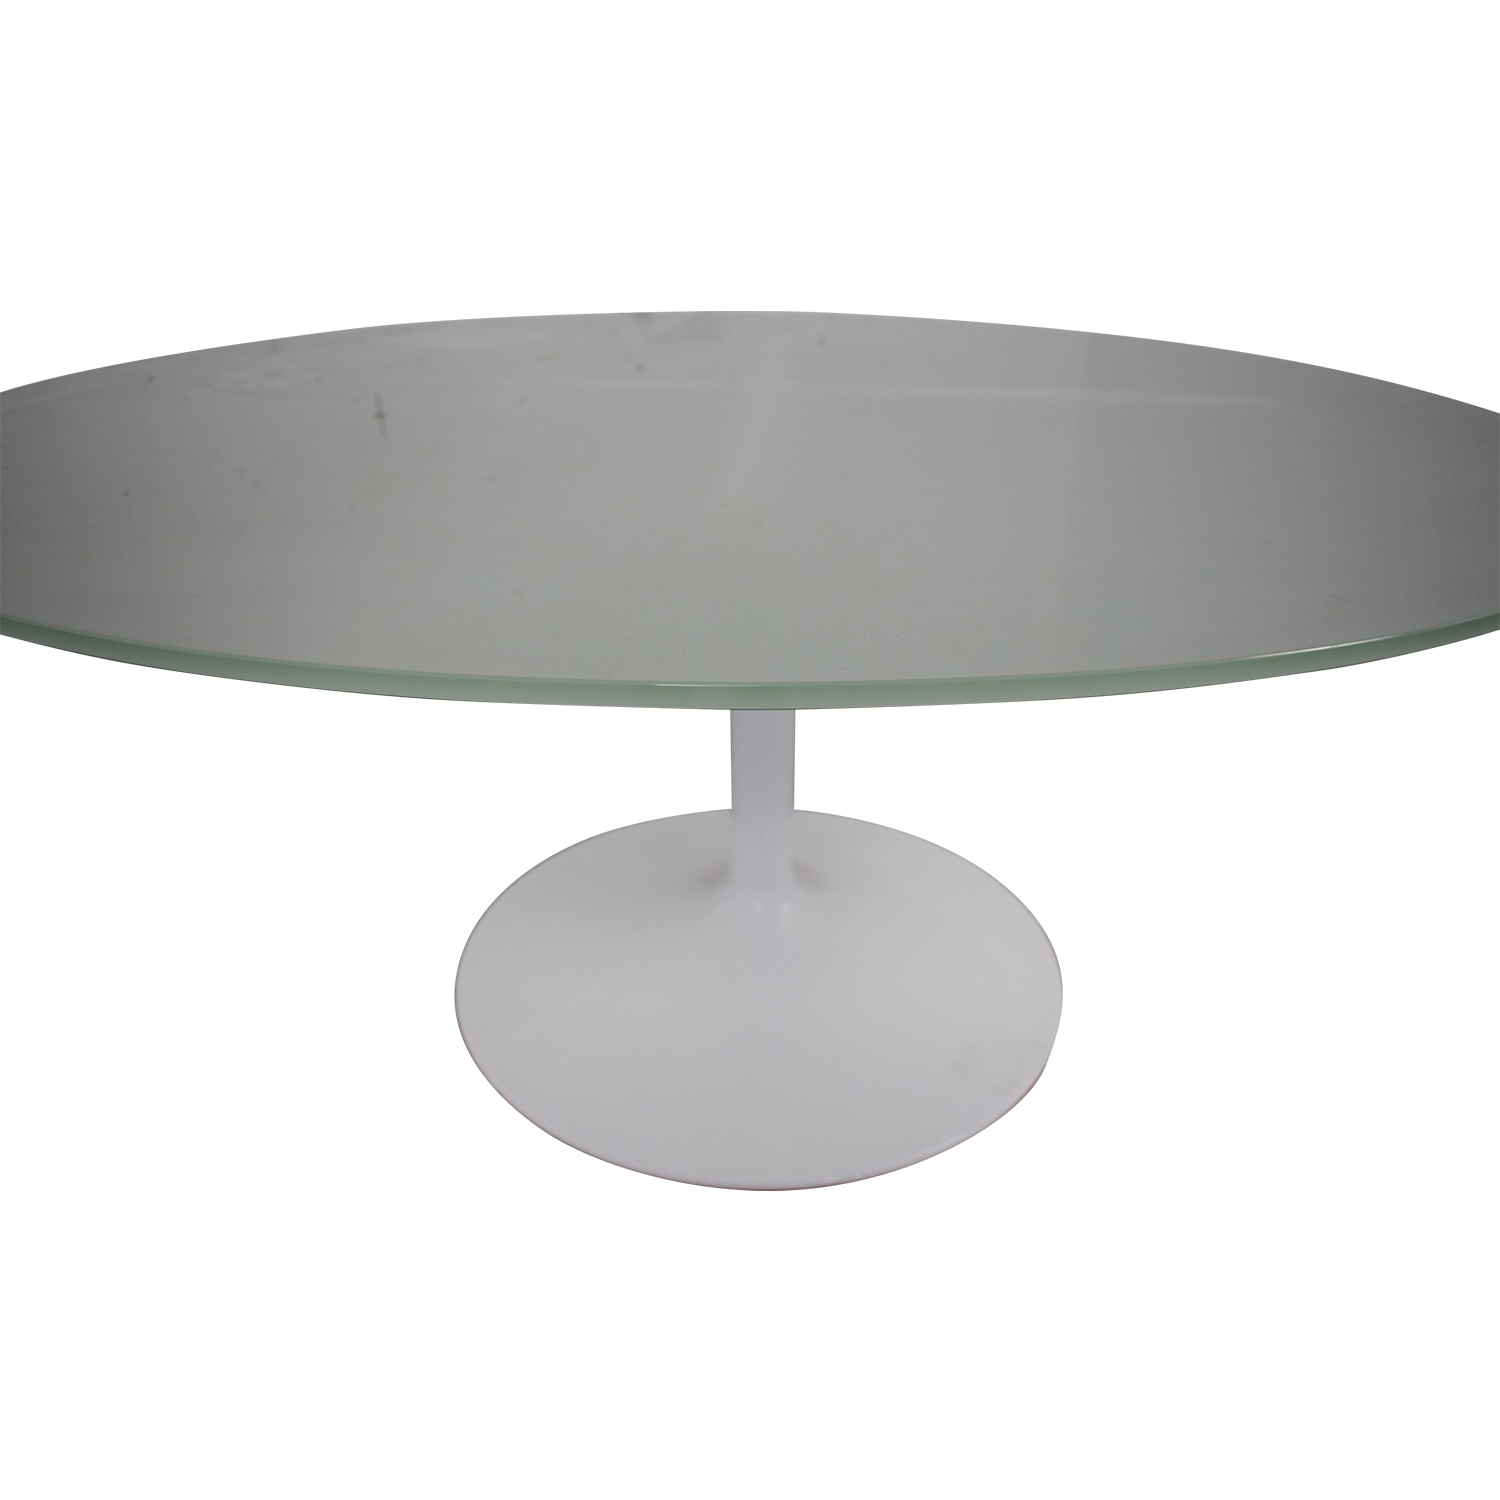 shop Room & Board Aria Round Glass Dining Table Room & Board Dinner Tables